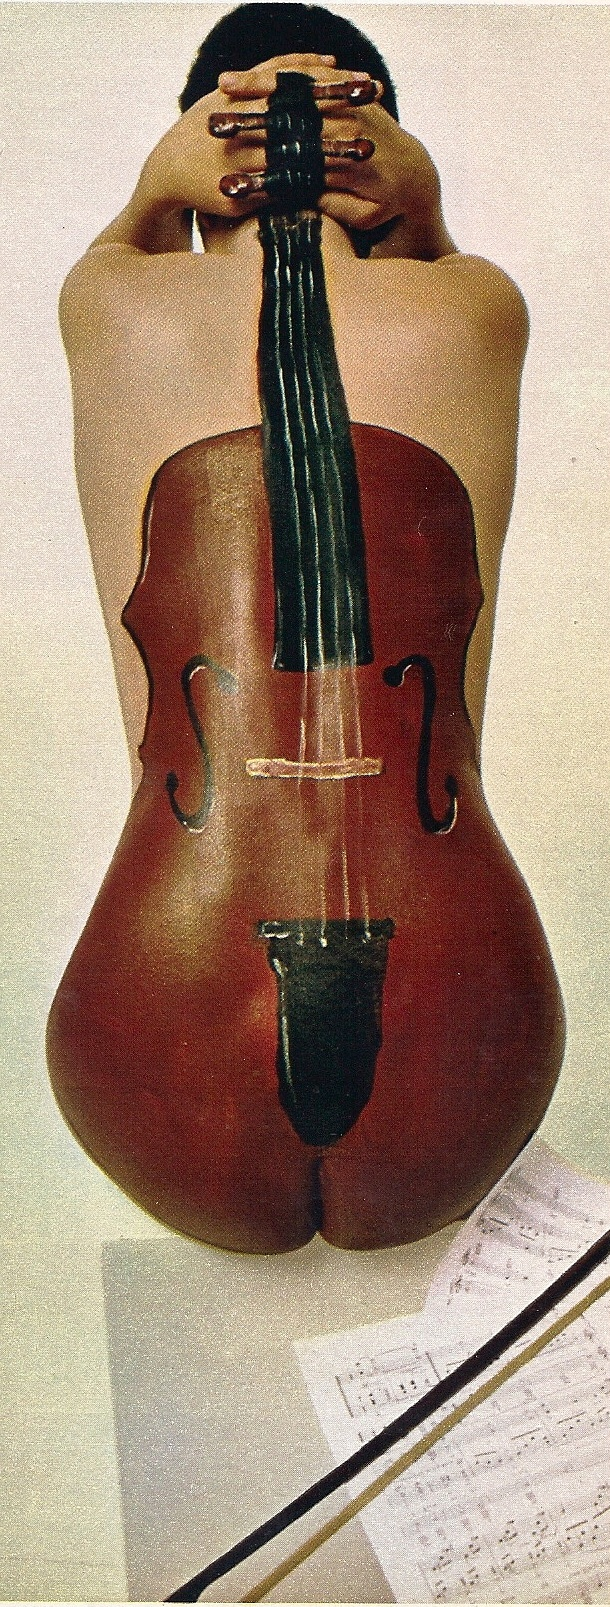 22 best cello images on pinterest musical instruments music and cello. Black Bedroom Furniture Sets. Home Design Ideas